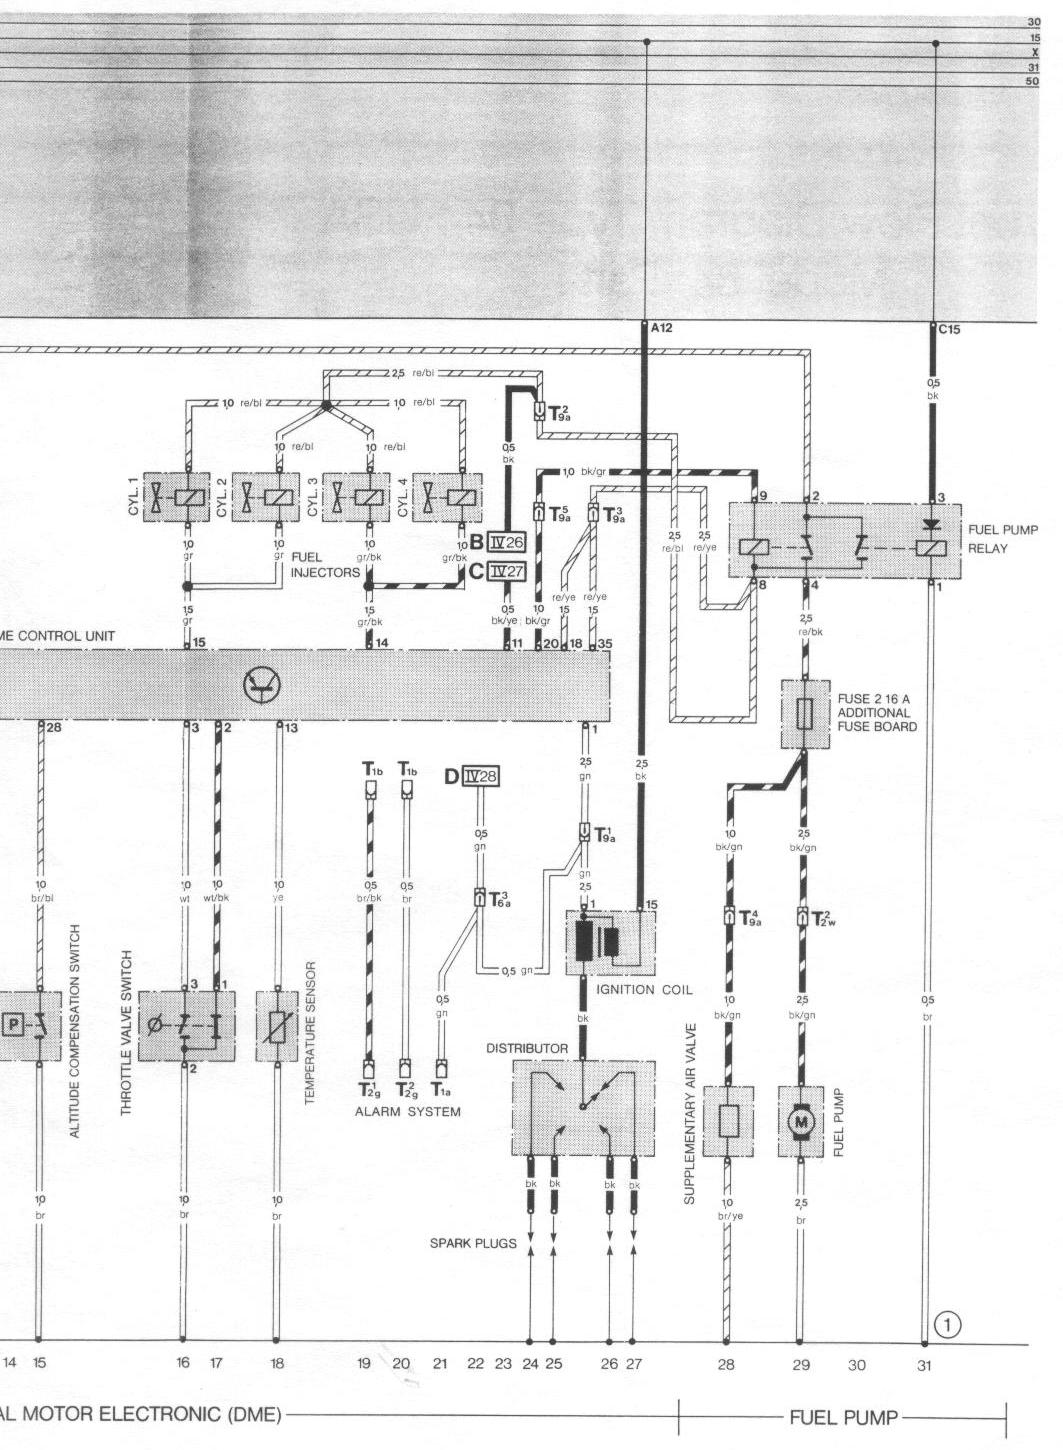 Wiring Diagram Porsche 928 Everything Wiring Diagram